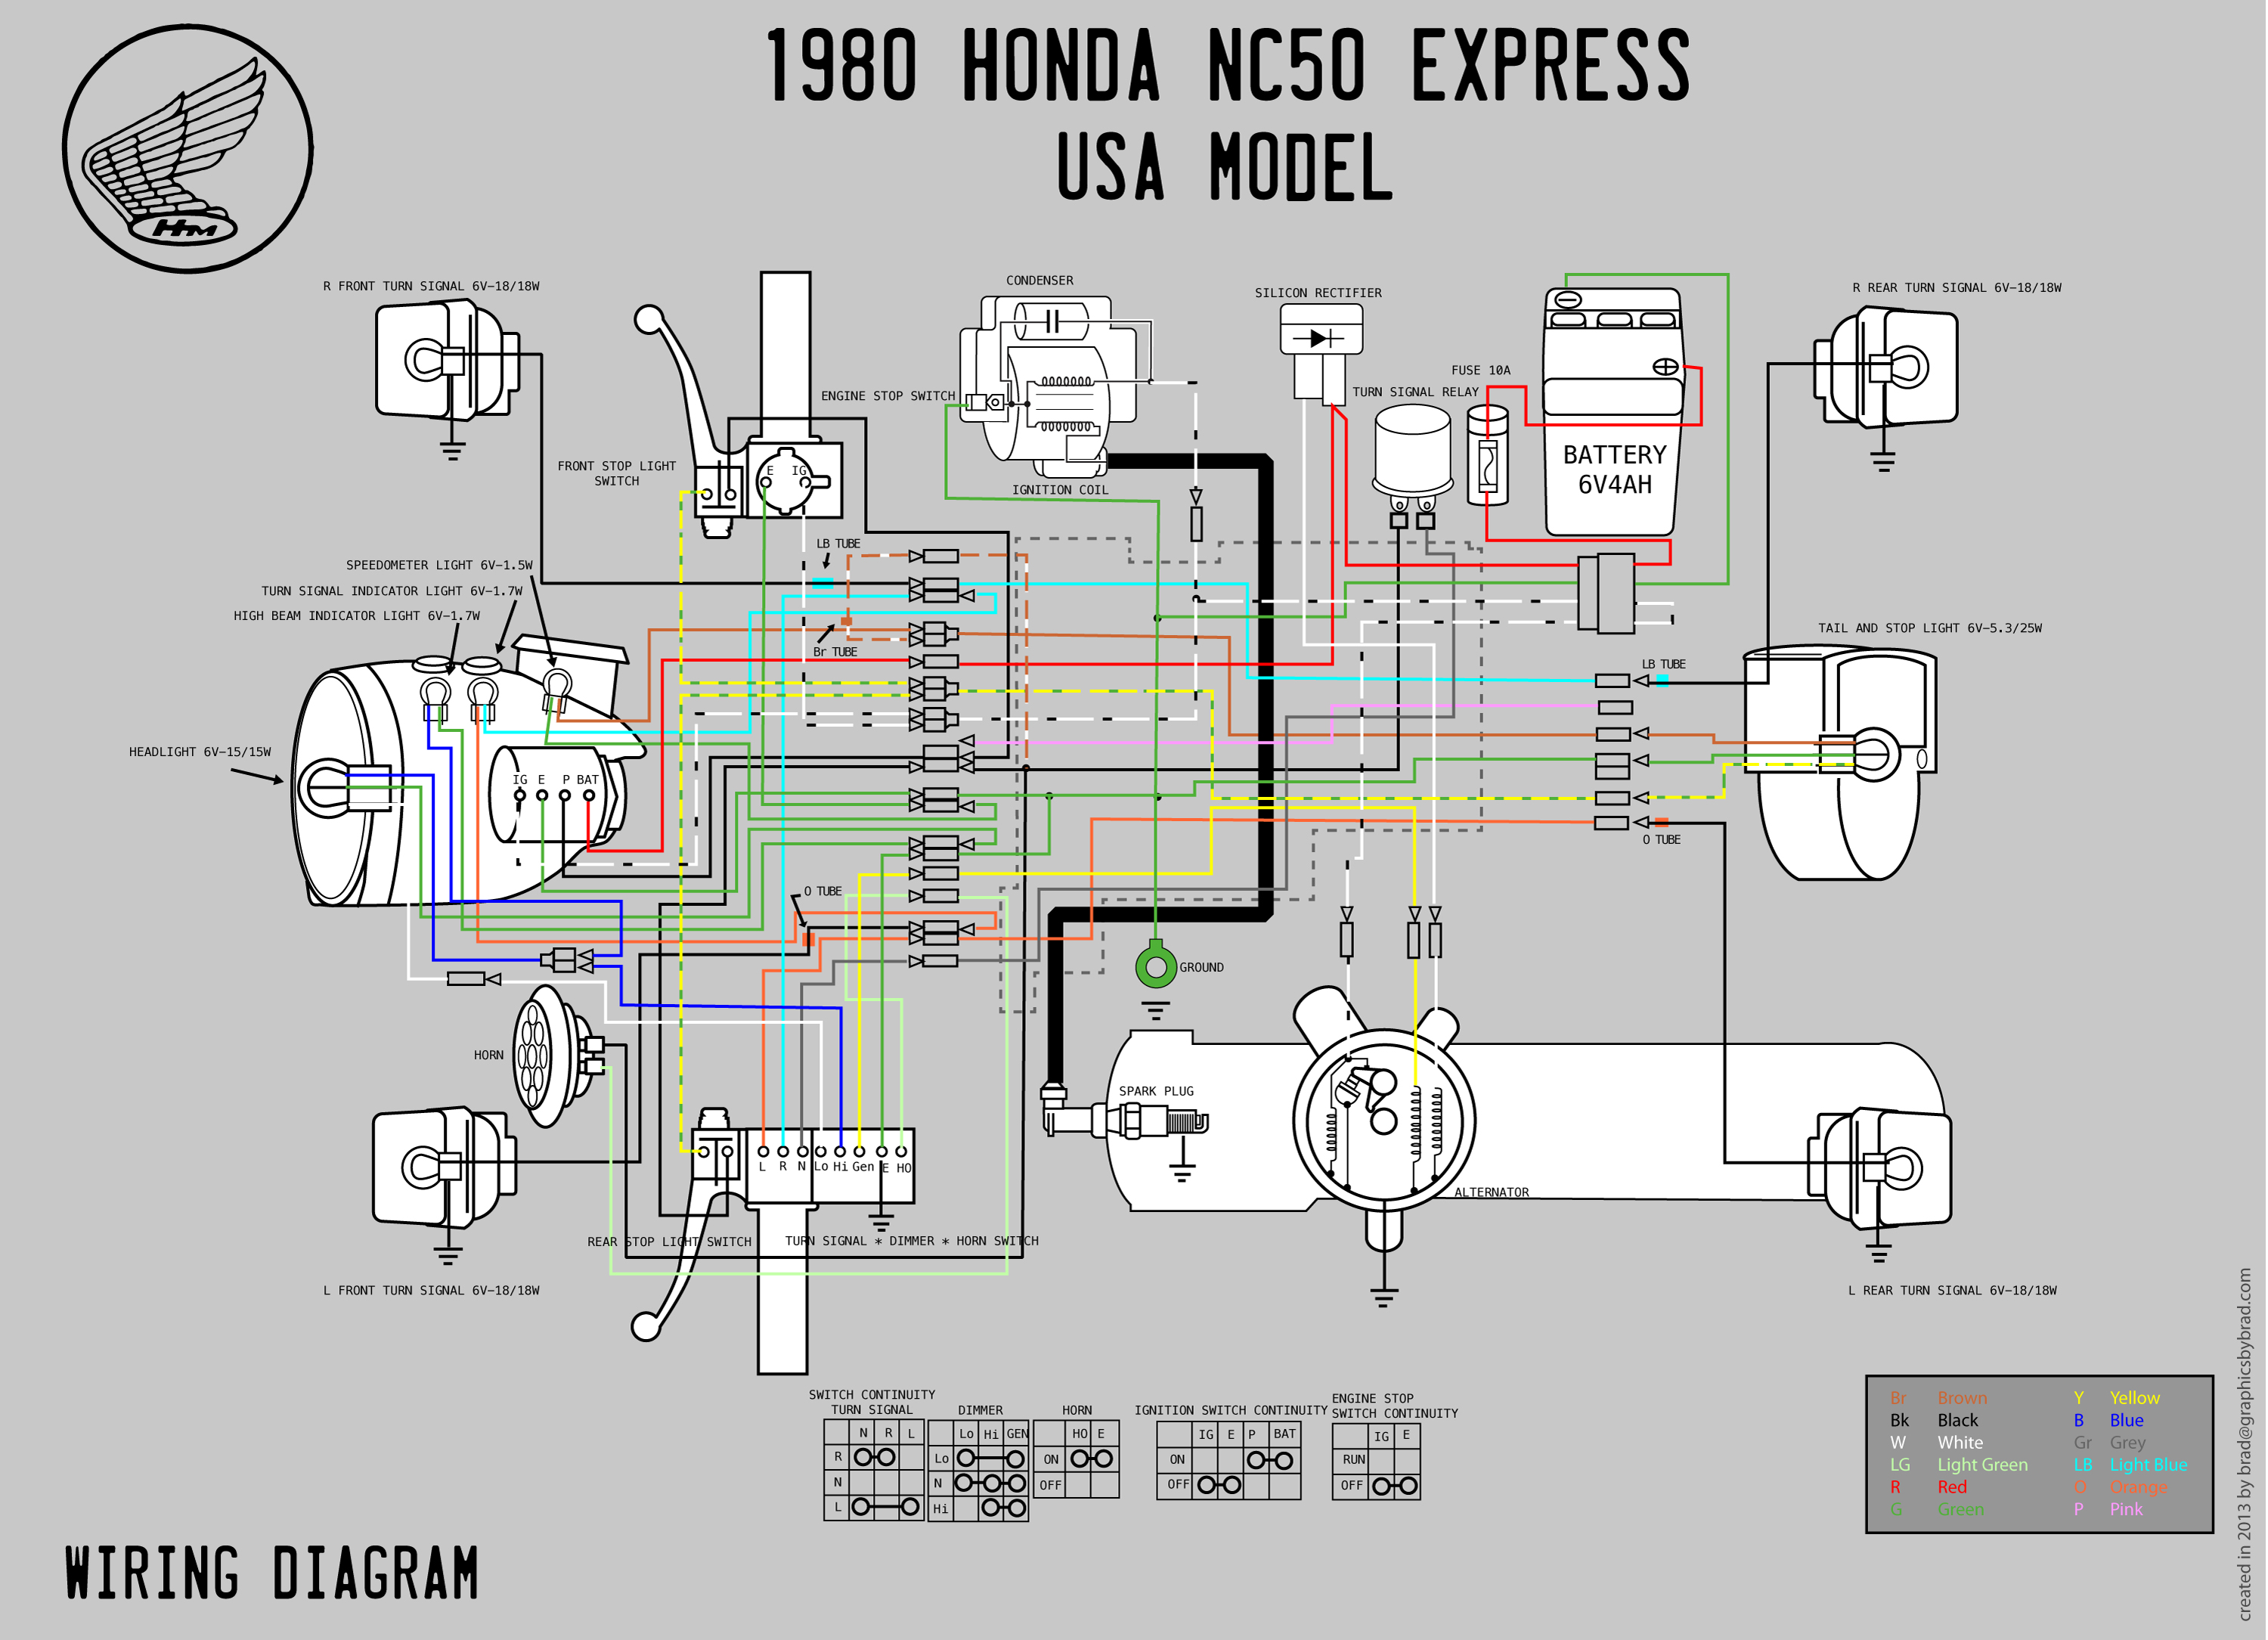 1980 nc50 wiring lrg 1980 honda nc50 wiring diagram moped wiki honda wiring diagram at nearapp.co